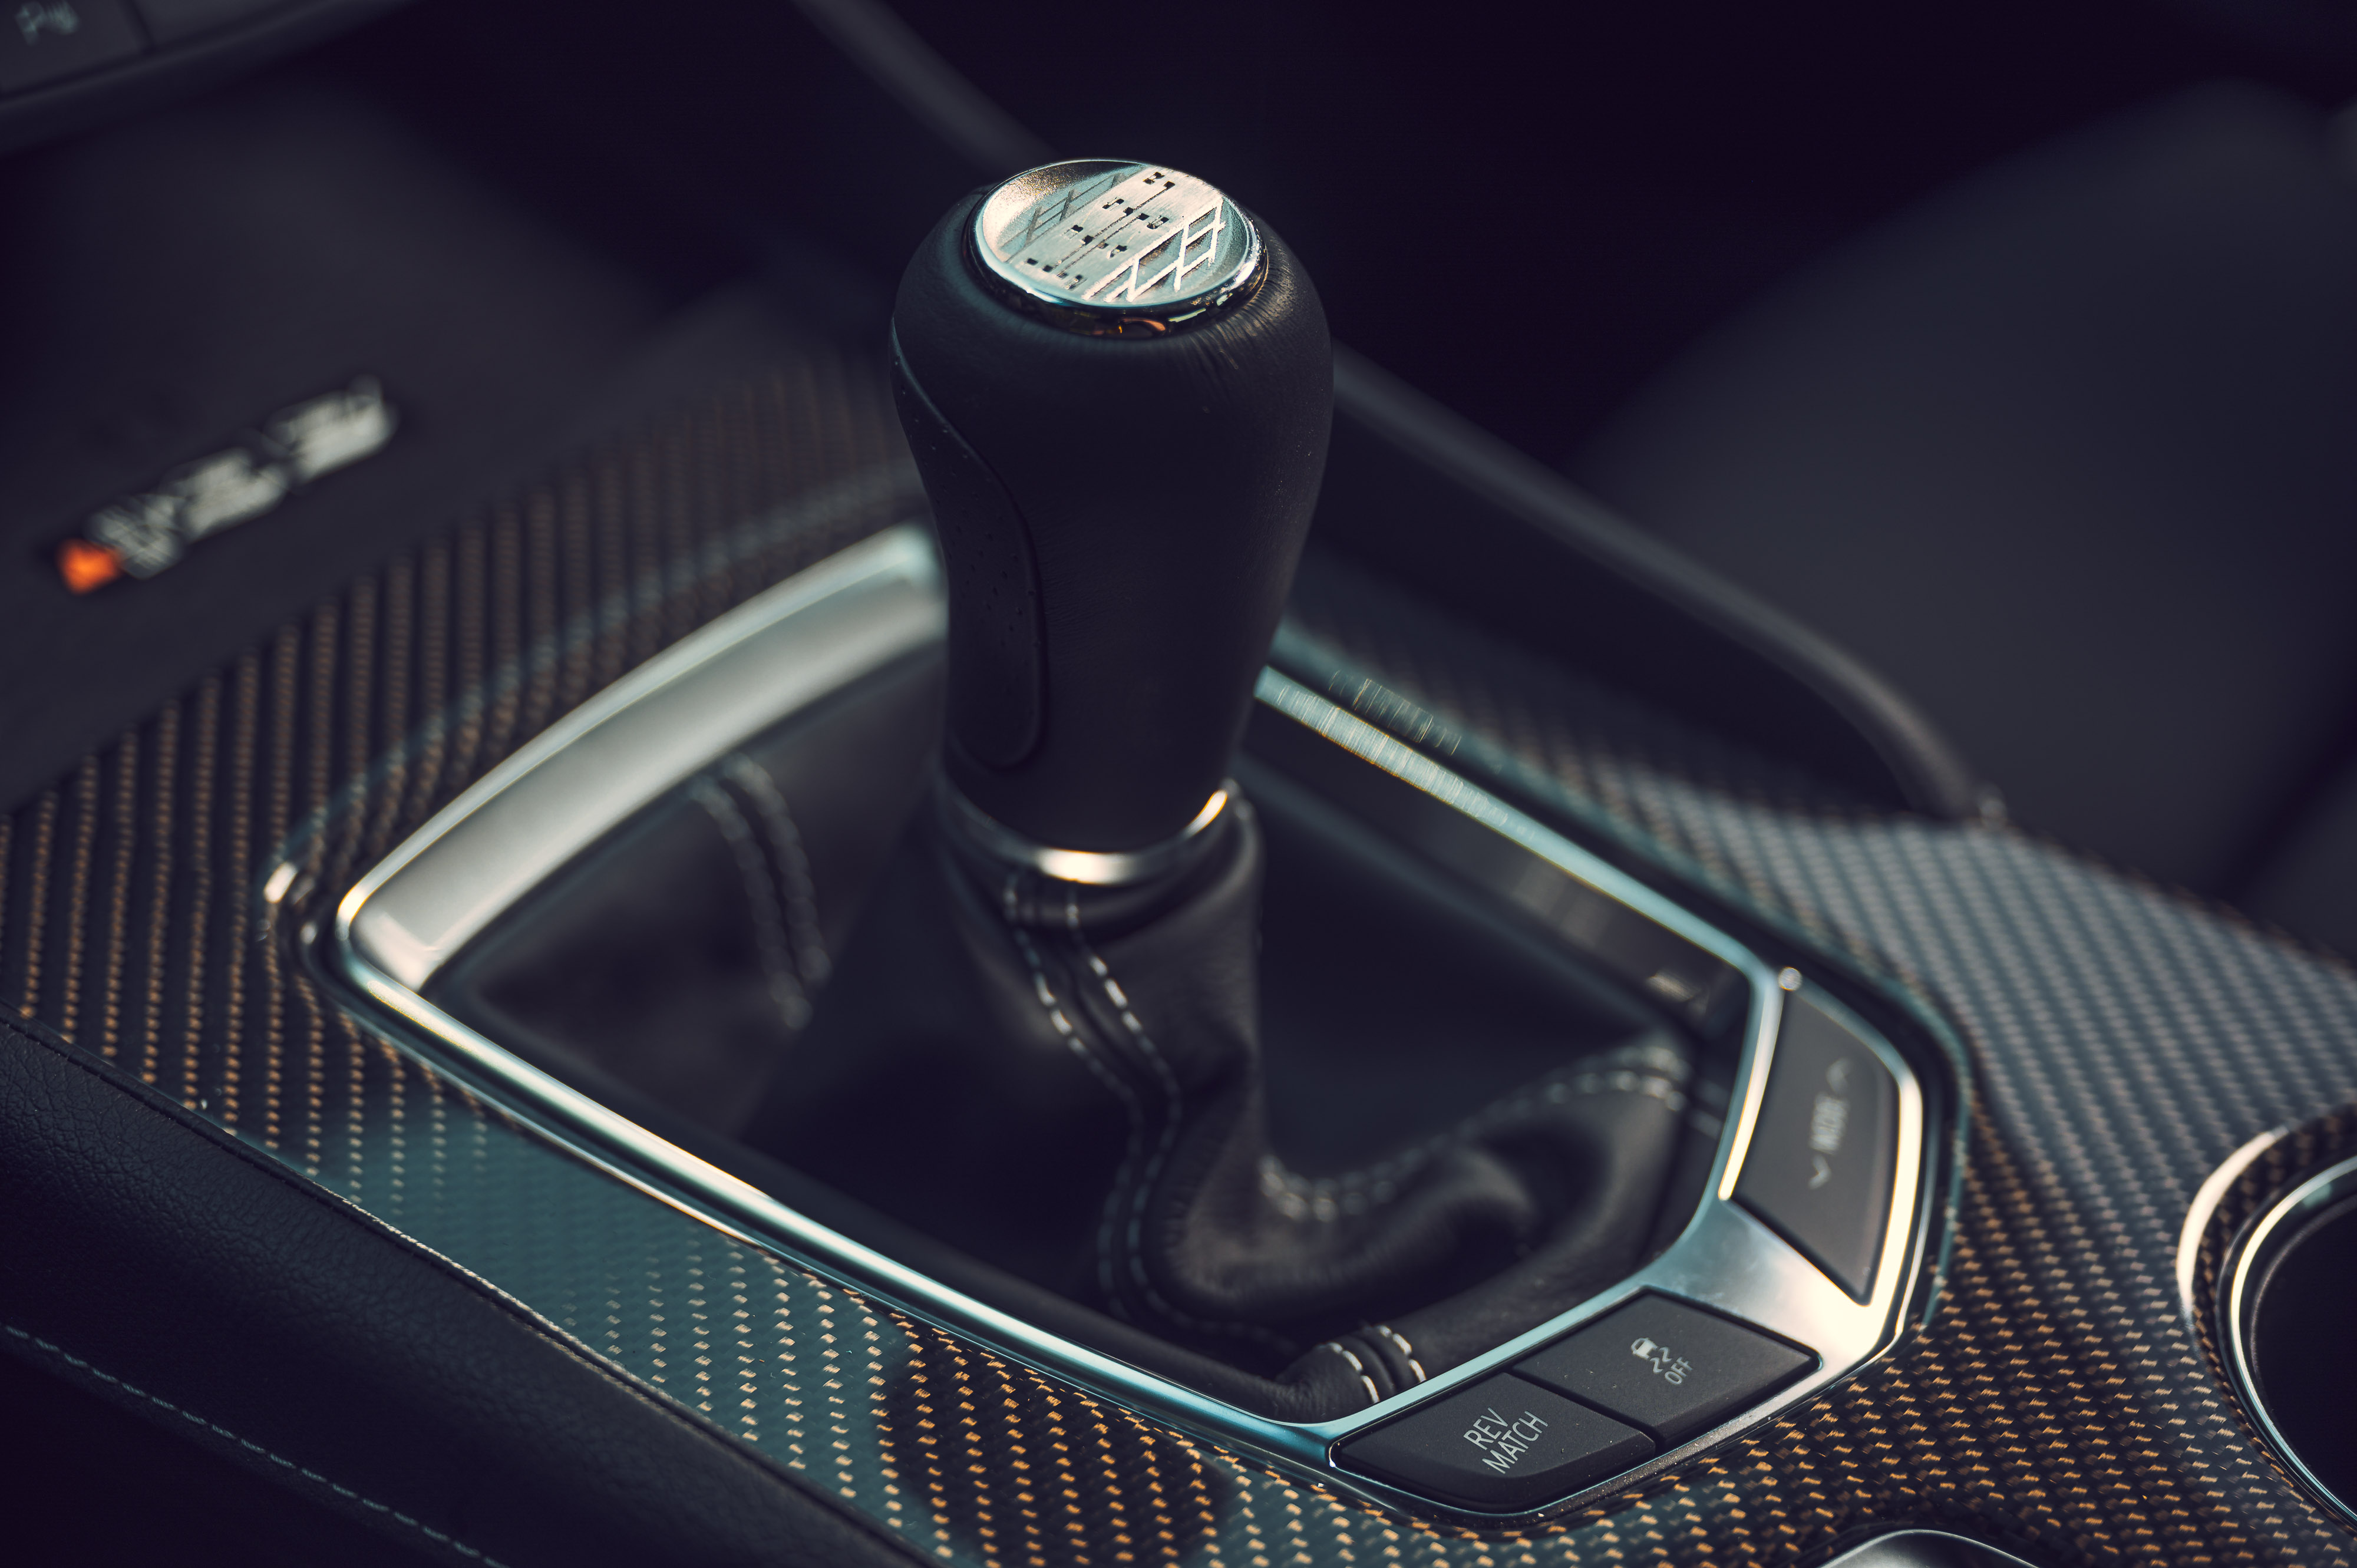 The six-speed transmission has a precise throw, and the clutch pedal is neither too light nor too heavy. The Rev Match button saves you from having to remember how to heel-and-toe.